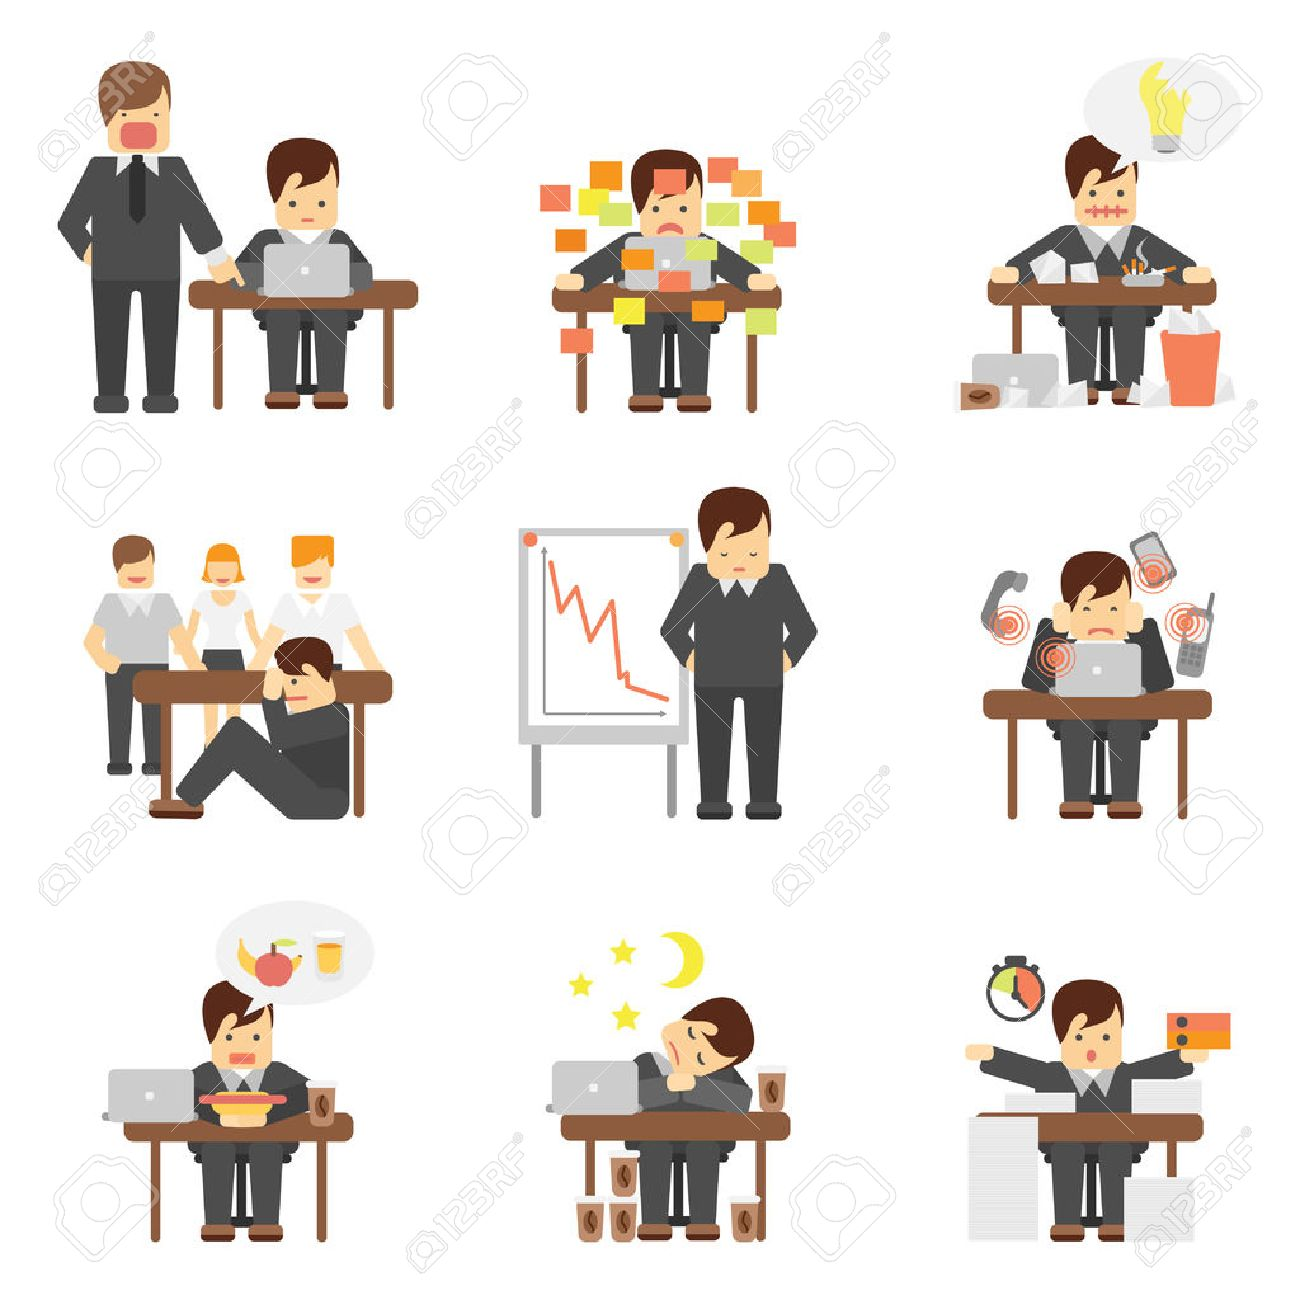 lack stock photos pictures royalty lack images and stock lack stress at work dropping results graphic angry boss cartoon characters flat icons set abstract